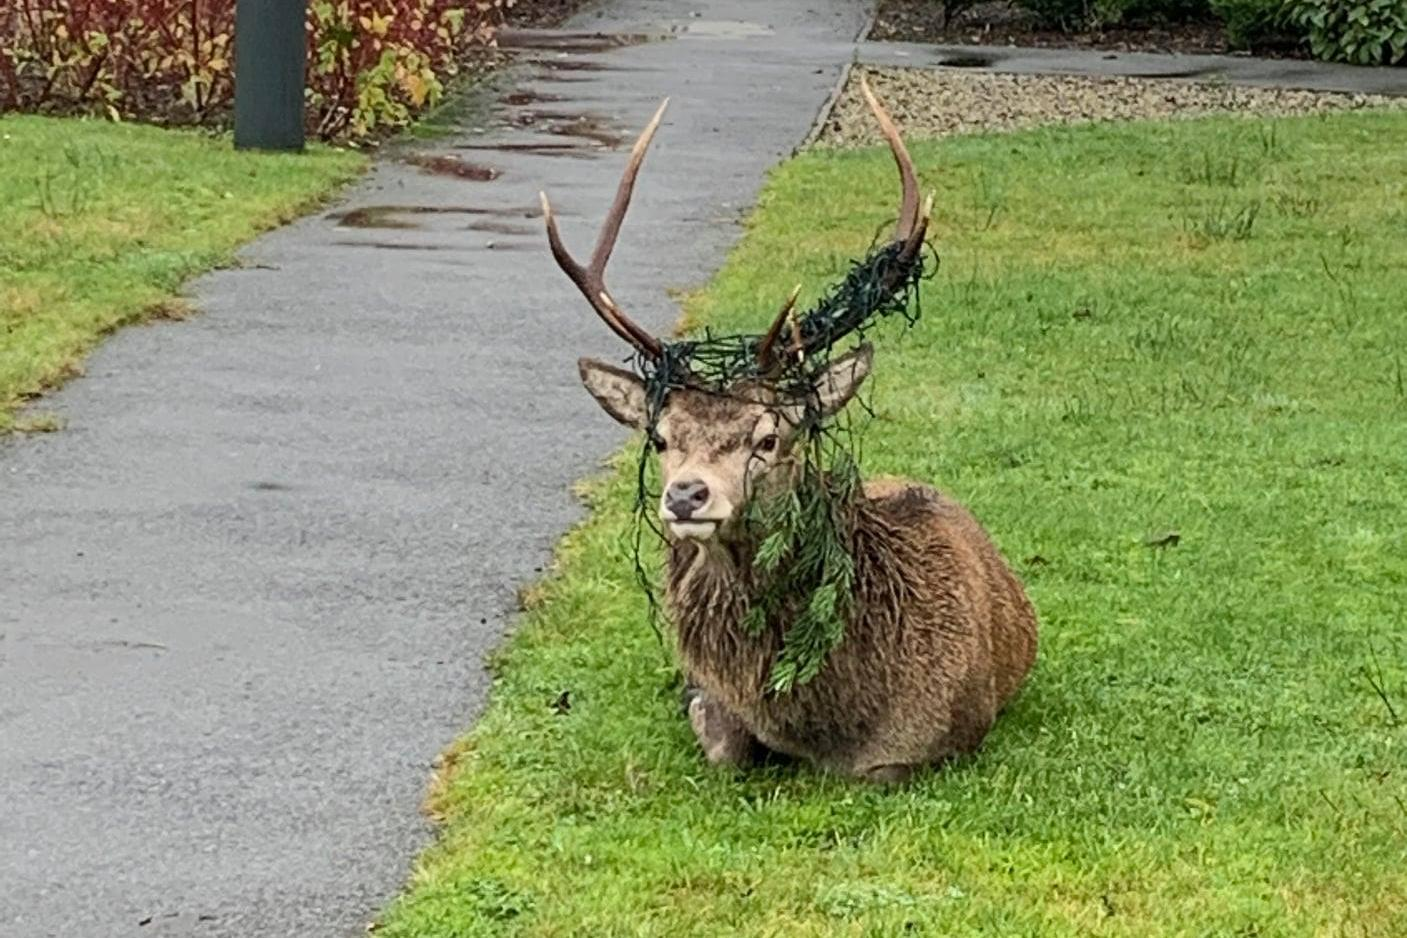 Stag dubbed 'Festive Bob' gets antlers tangled in festive lights after 'headbutting' Scottish Christmas tree